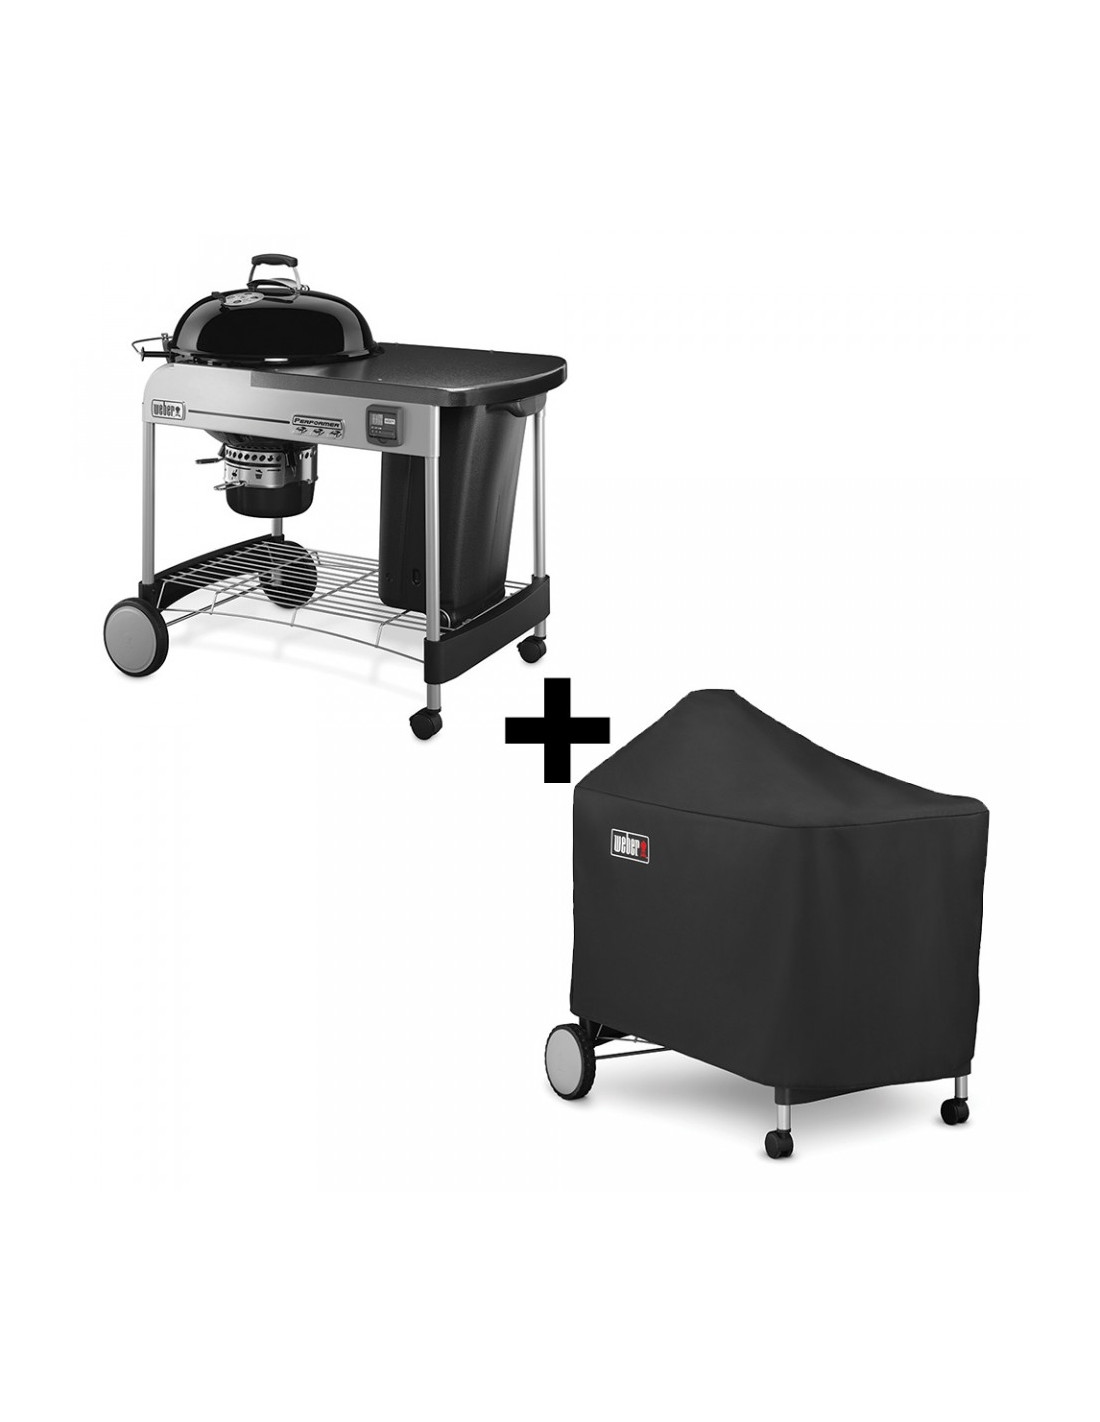 pack barbecue weber performer premium 57cm gbs housse. Black Bedroom Furniture Sets. Home Design Ideas